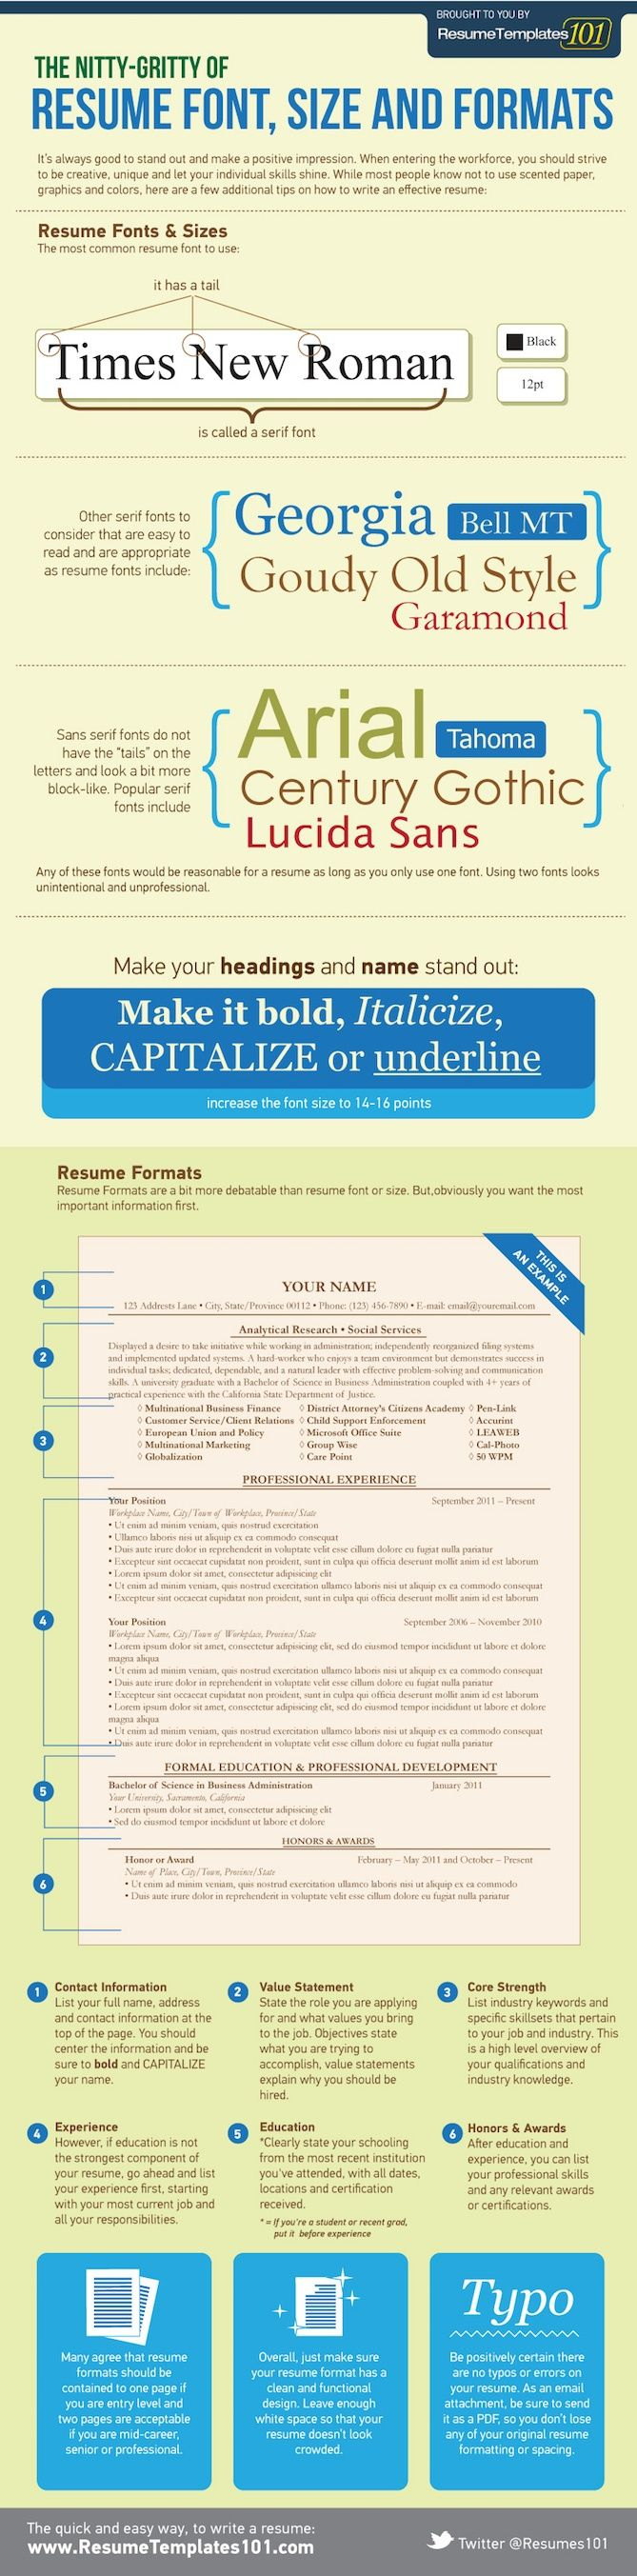 how to properly format your resume infographic via hubspot how to properly format your resume infographic via hubspot